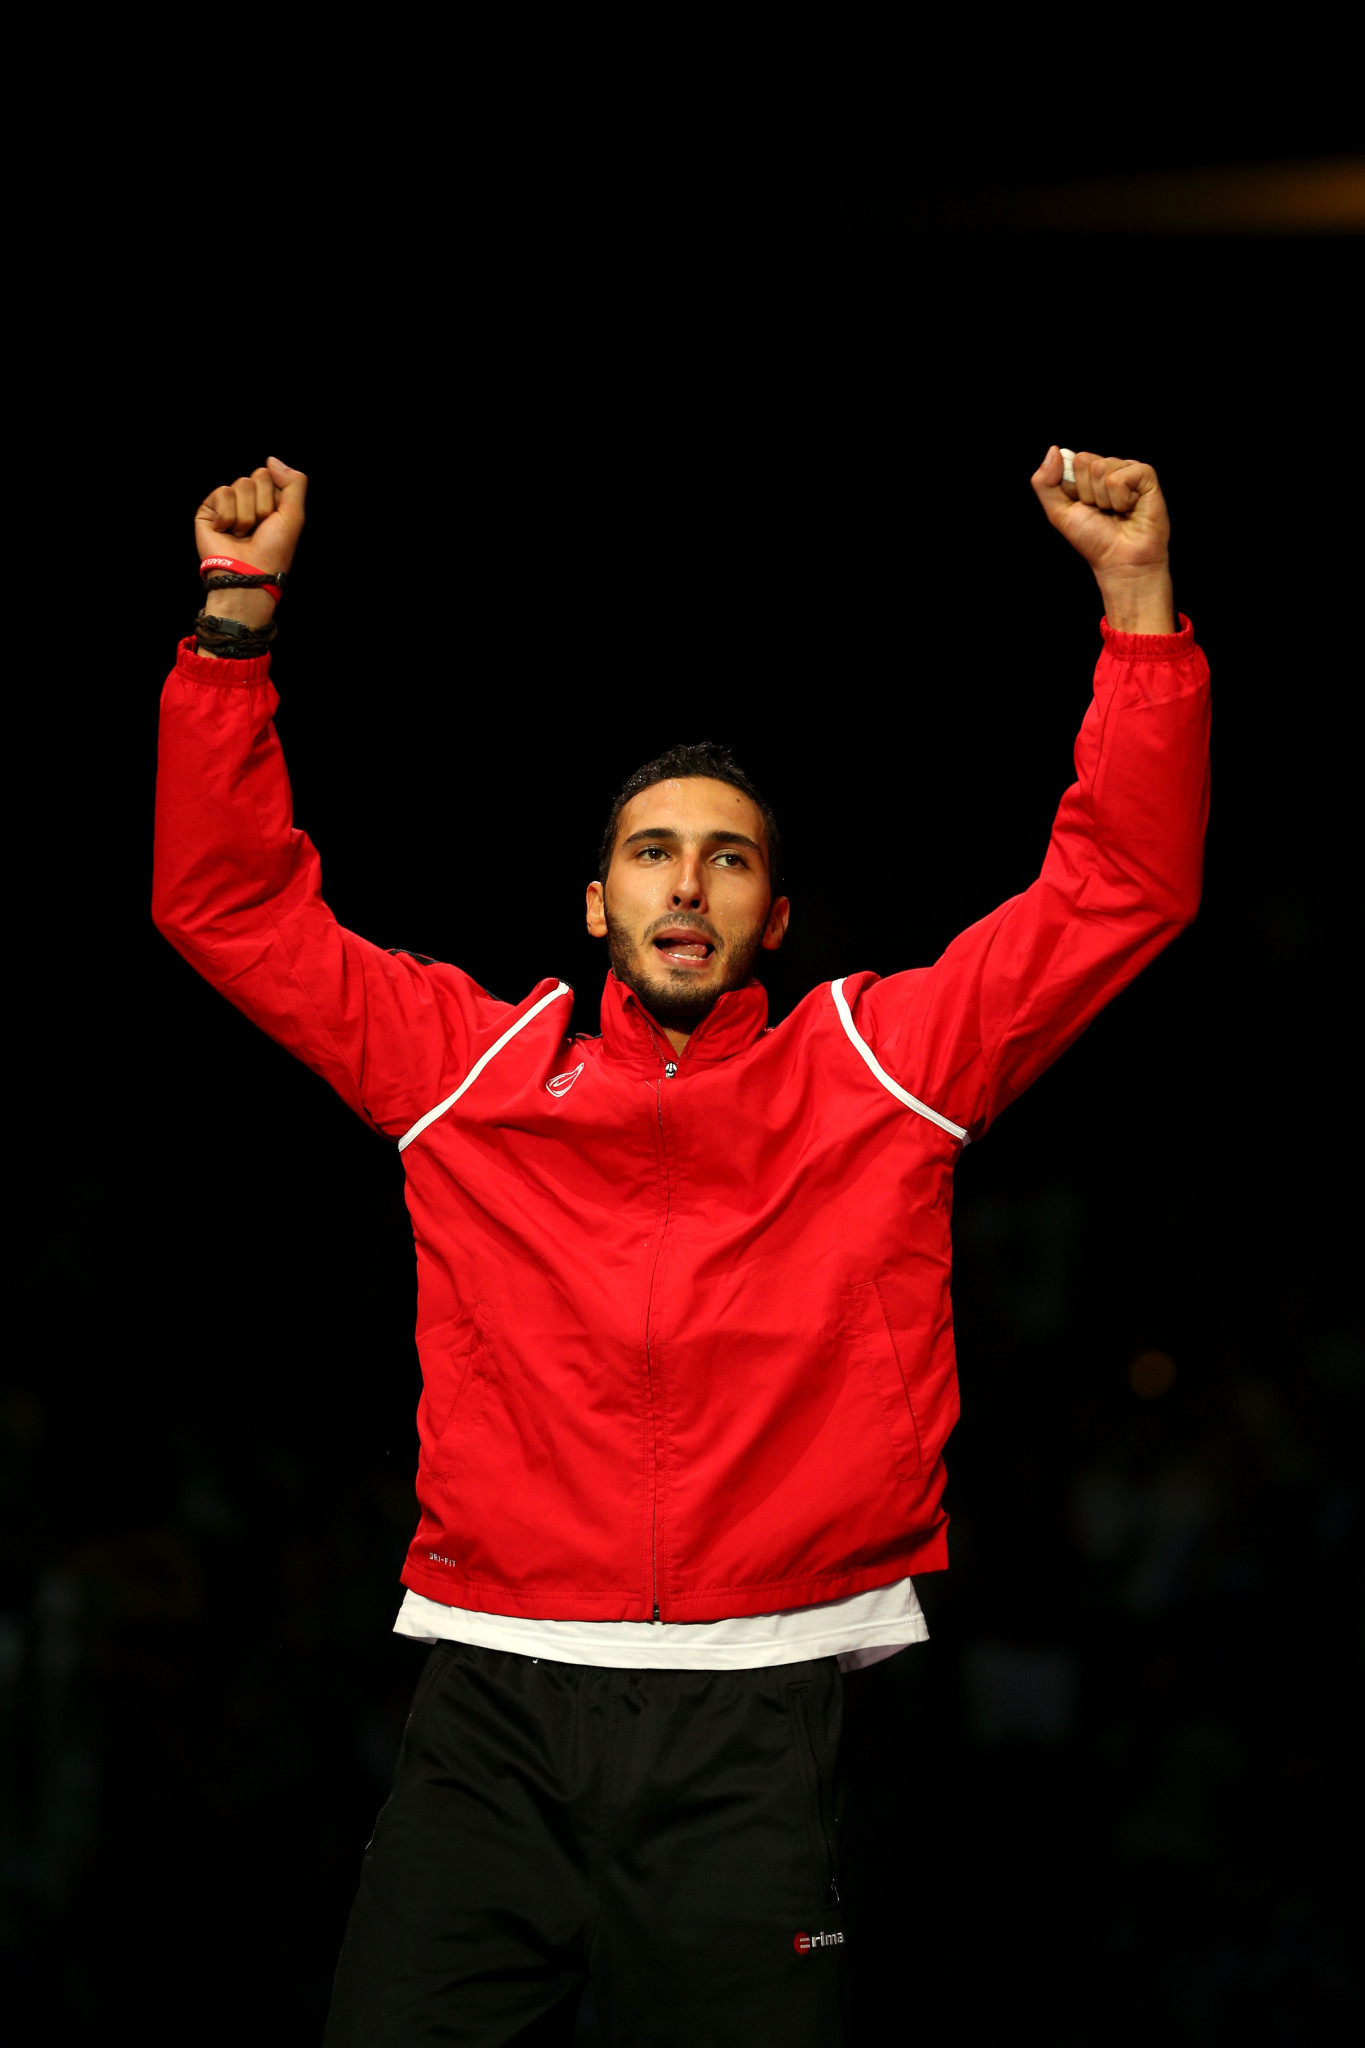 Olympic silver medallist Alaaeldin Abouelkassem also won gold for Egypt ©Getty Images